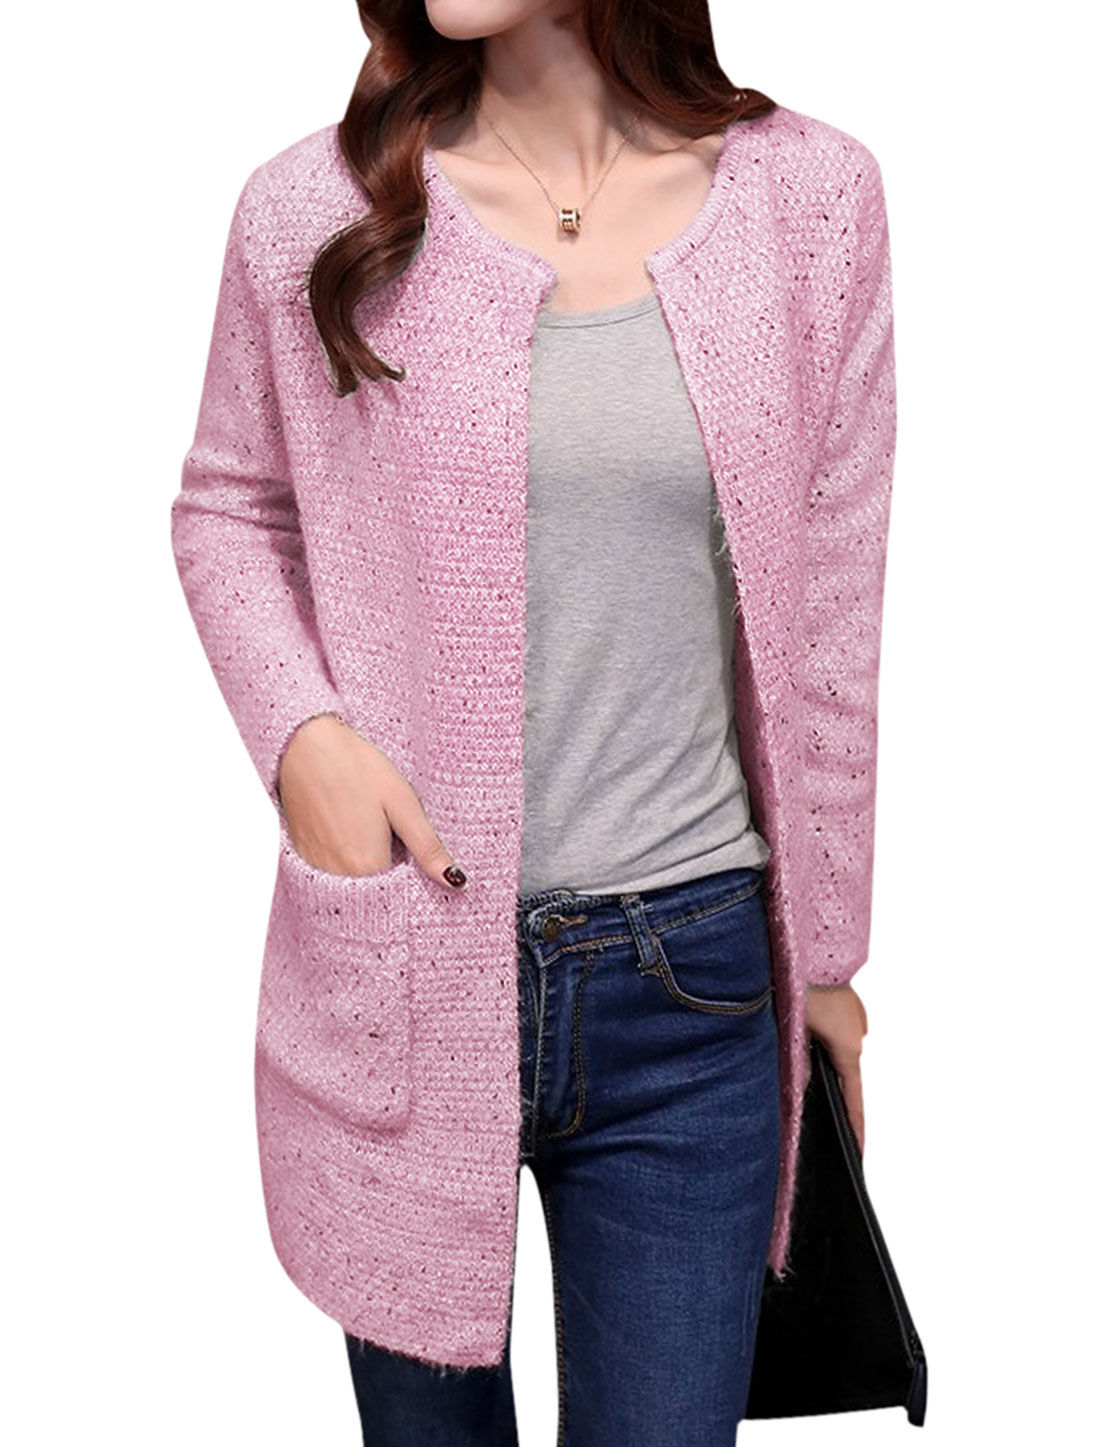 Women Buttonless Two Front Pockets Casual Knitwear Cardigan Pink S